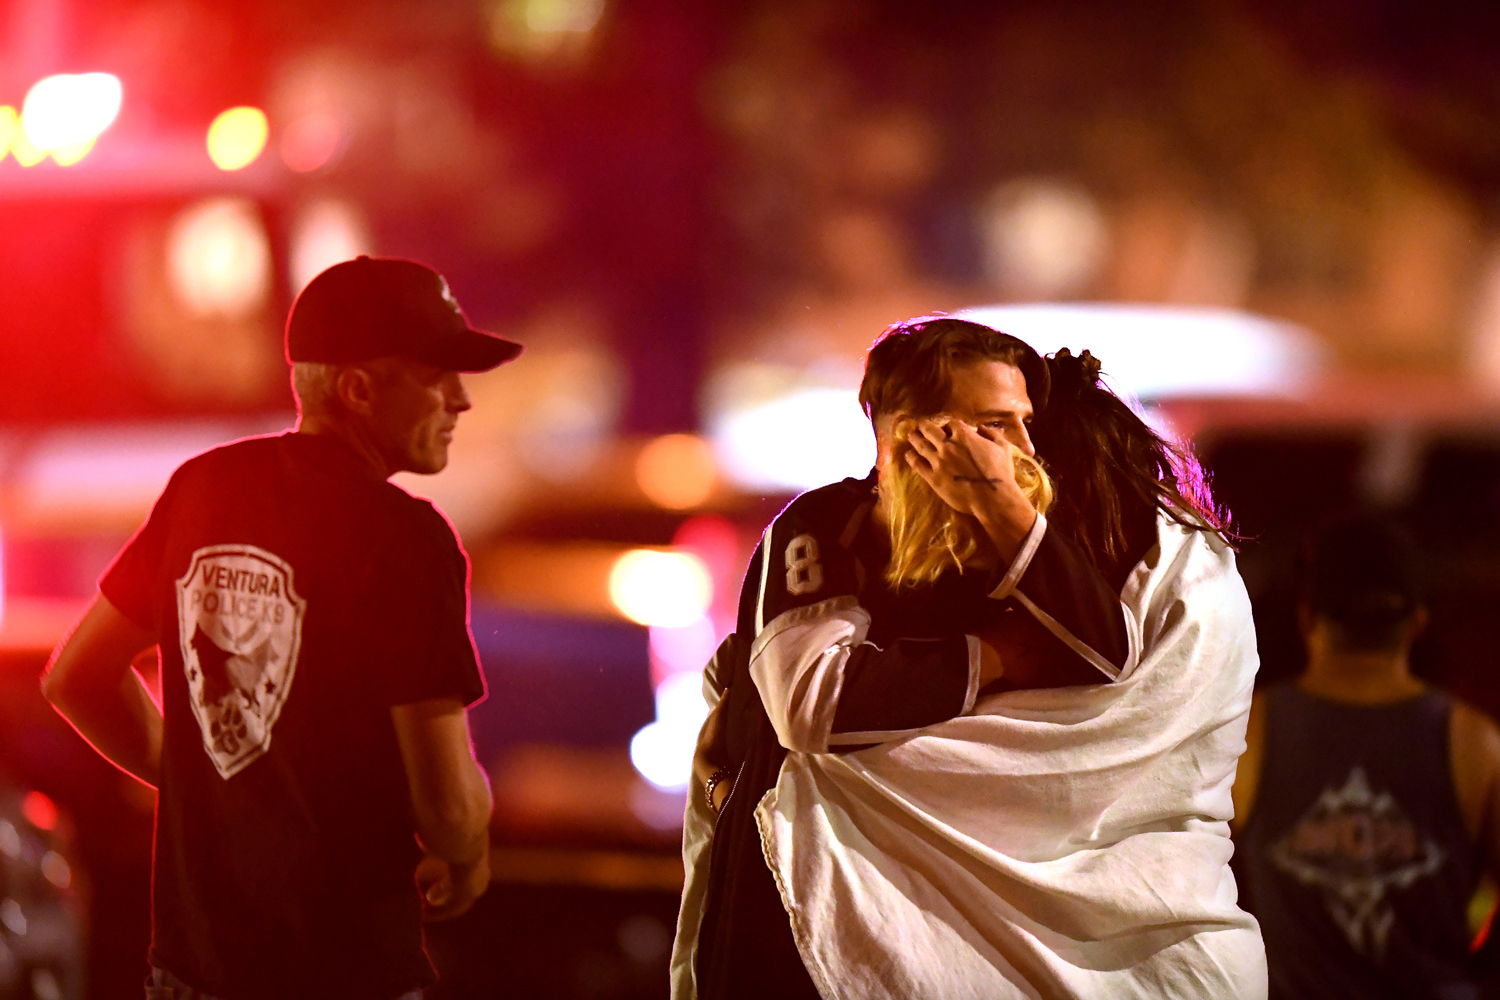 People comfort each other after the mass shooting at Borderline Bar & Grill.